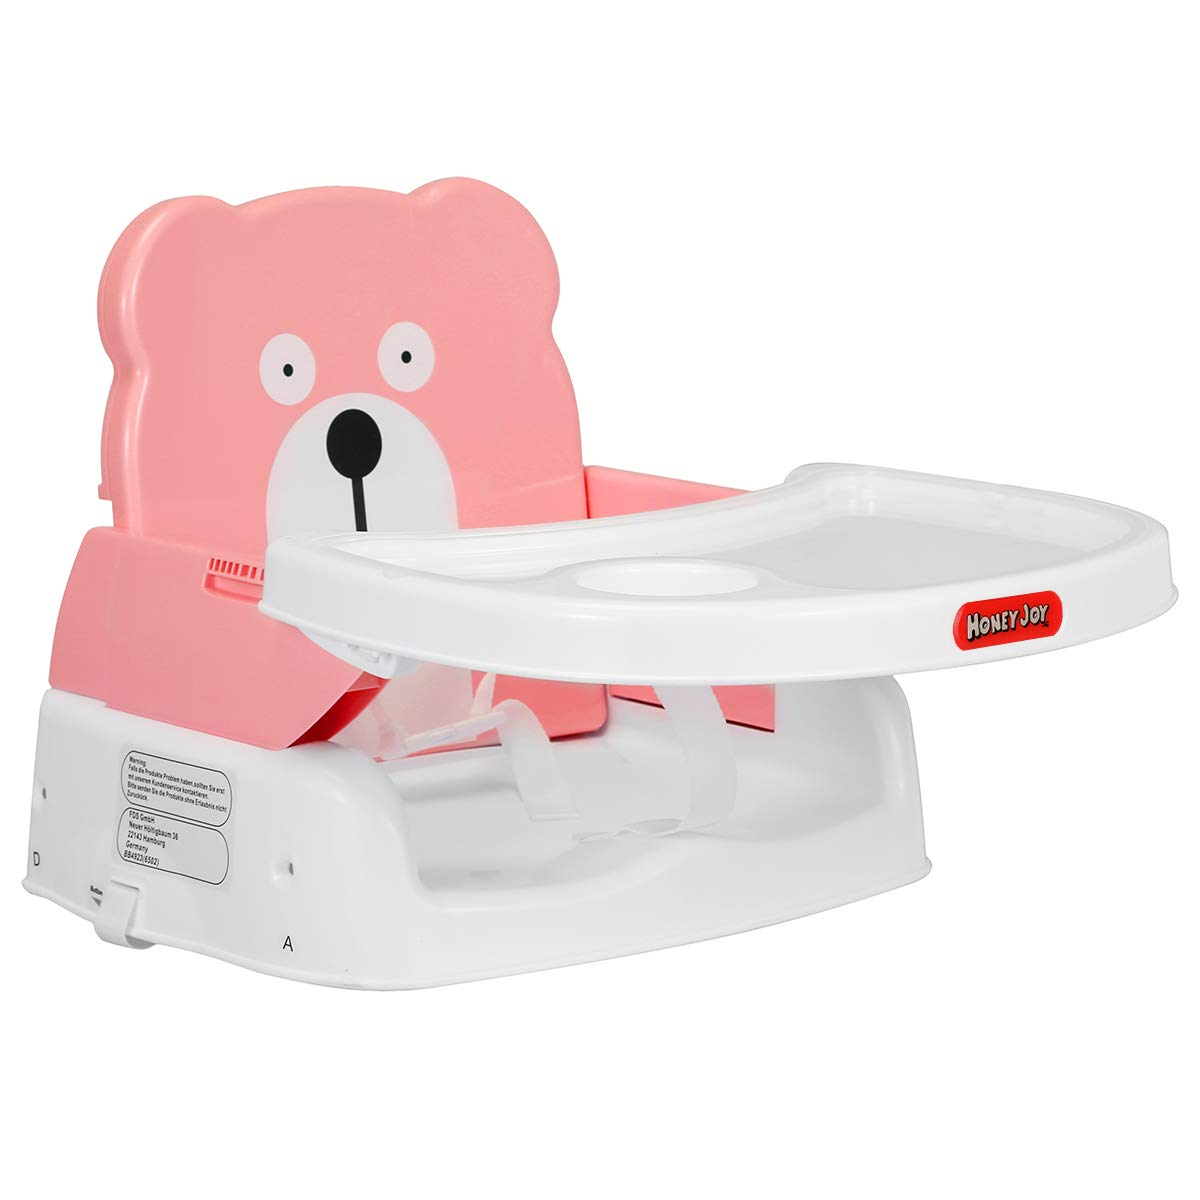 HONEYJOY Baby Booster Seat, 2 in 1 Portable Booster Feeding Seat W/Safety Belt, Removable Tray, Cup Holder for Toddlers (Pink) by Honeyjoy